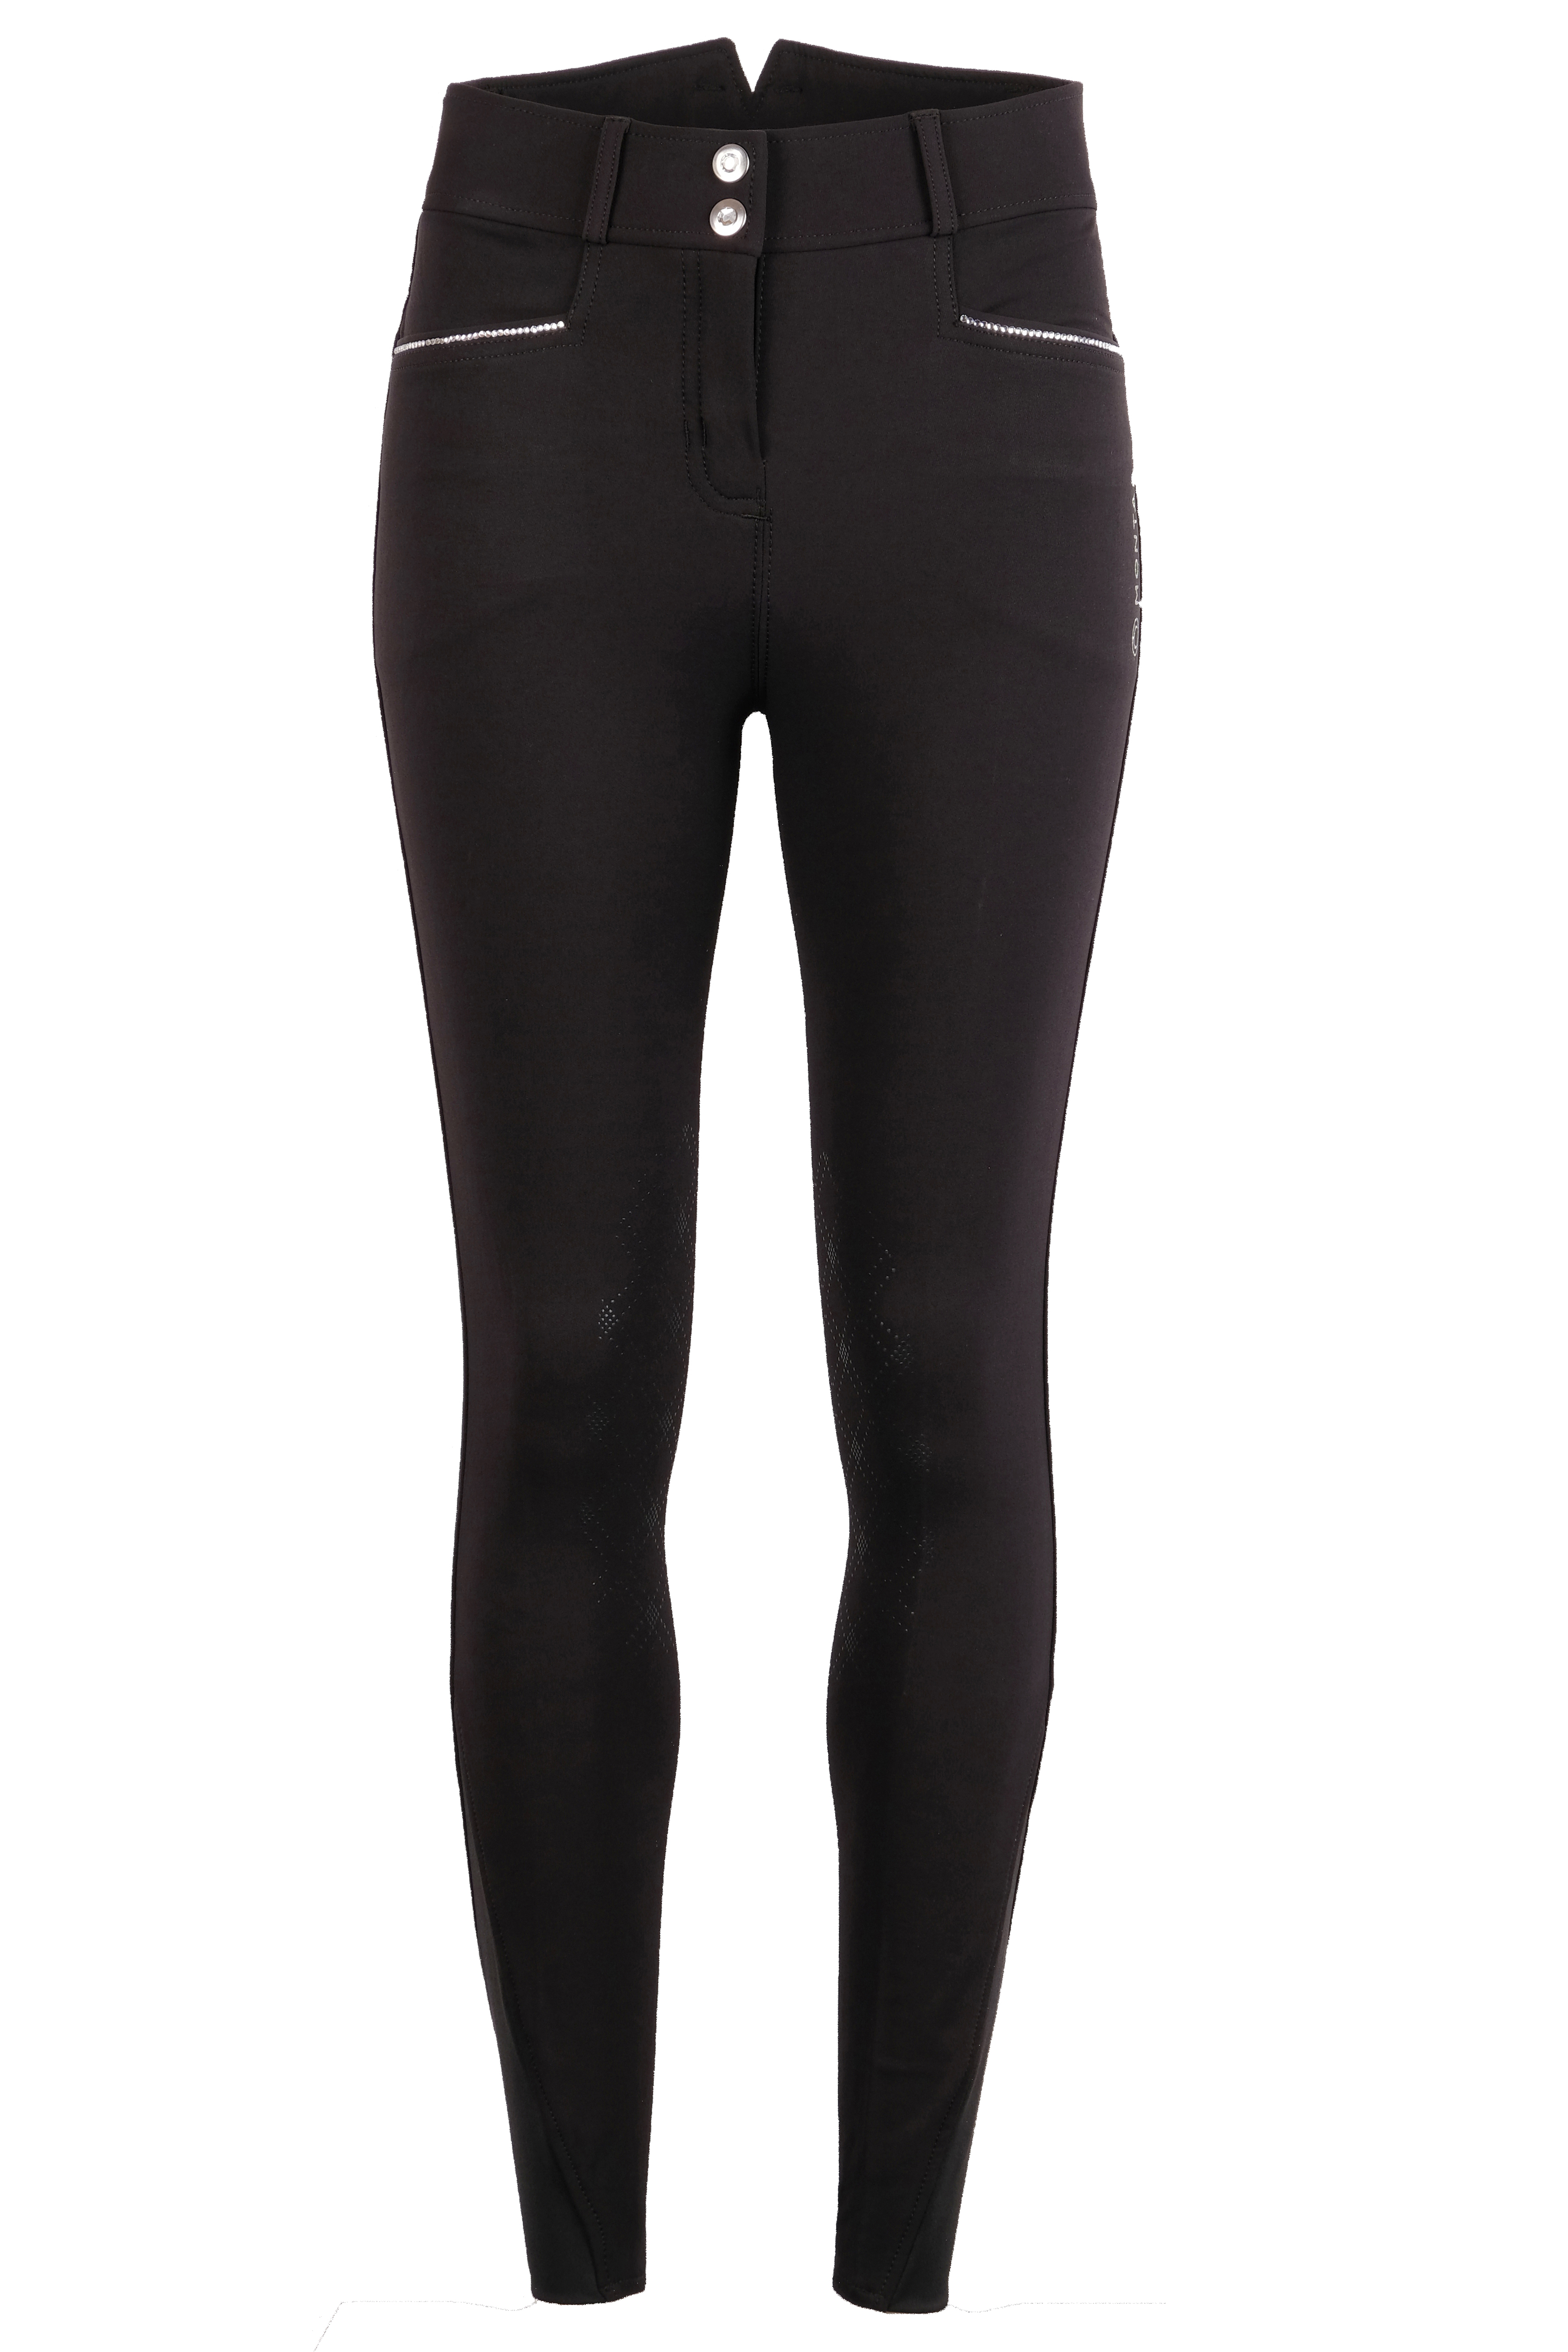 21110-41 Romy Crystal Lines Breeches Black Kneegrip Front.jpg